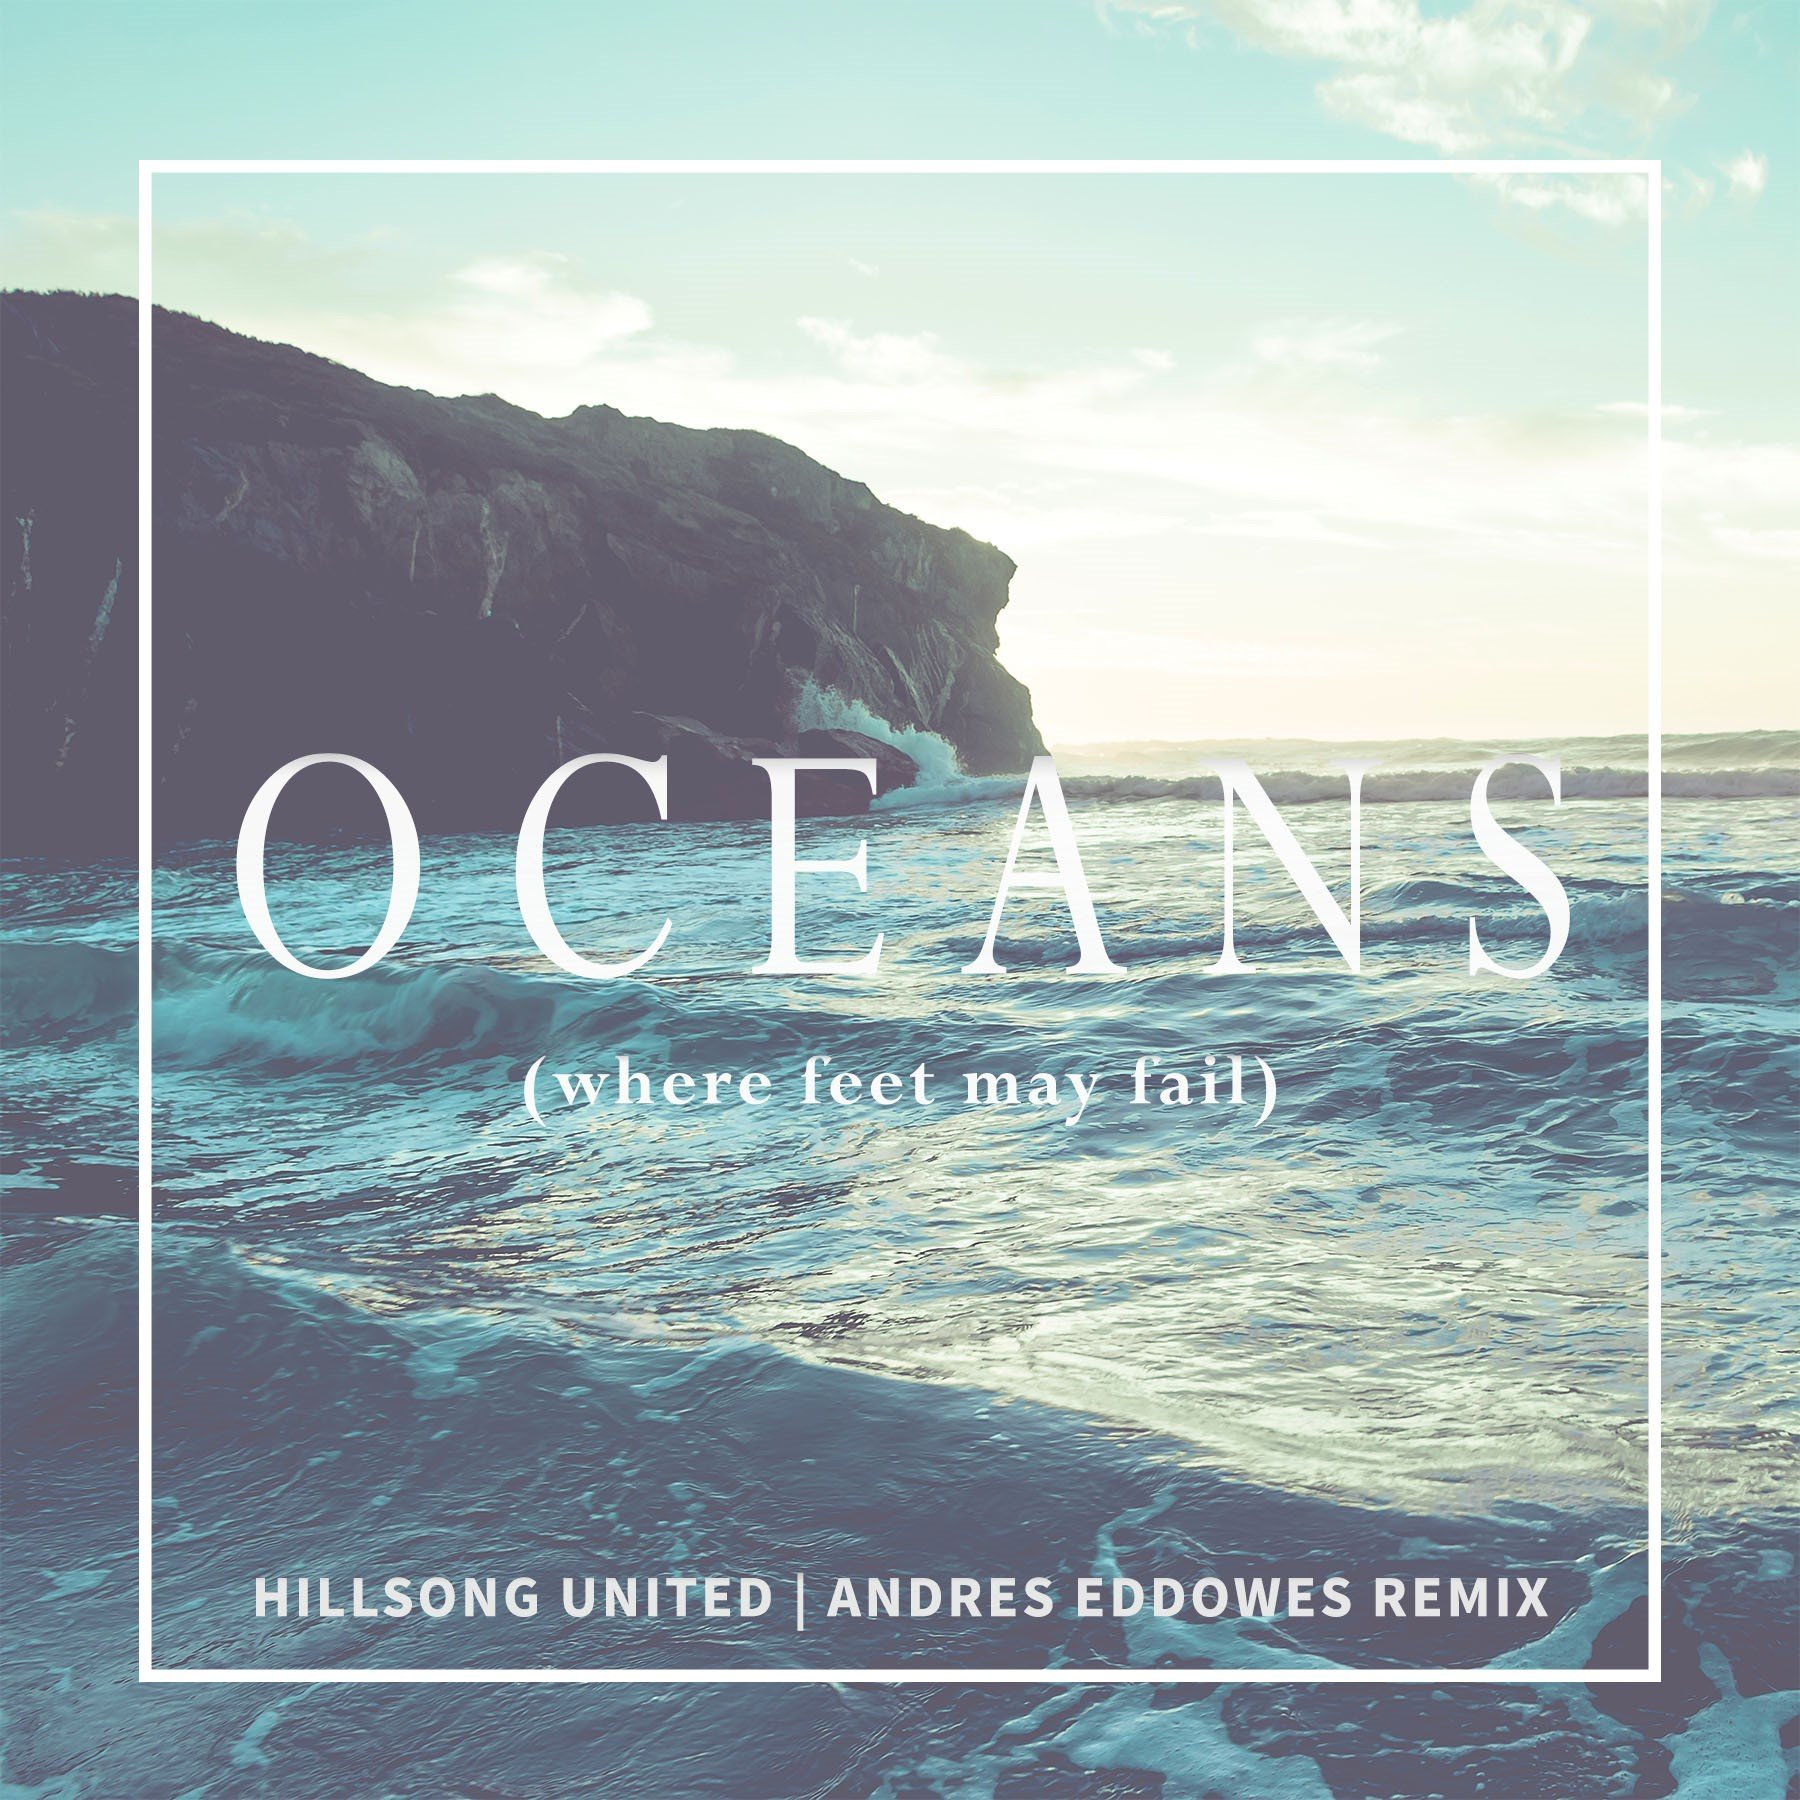 Hillsong United - Oceans (Where Feet May Fail) Mp3 Download